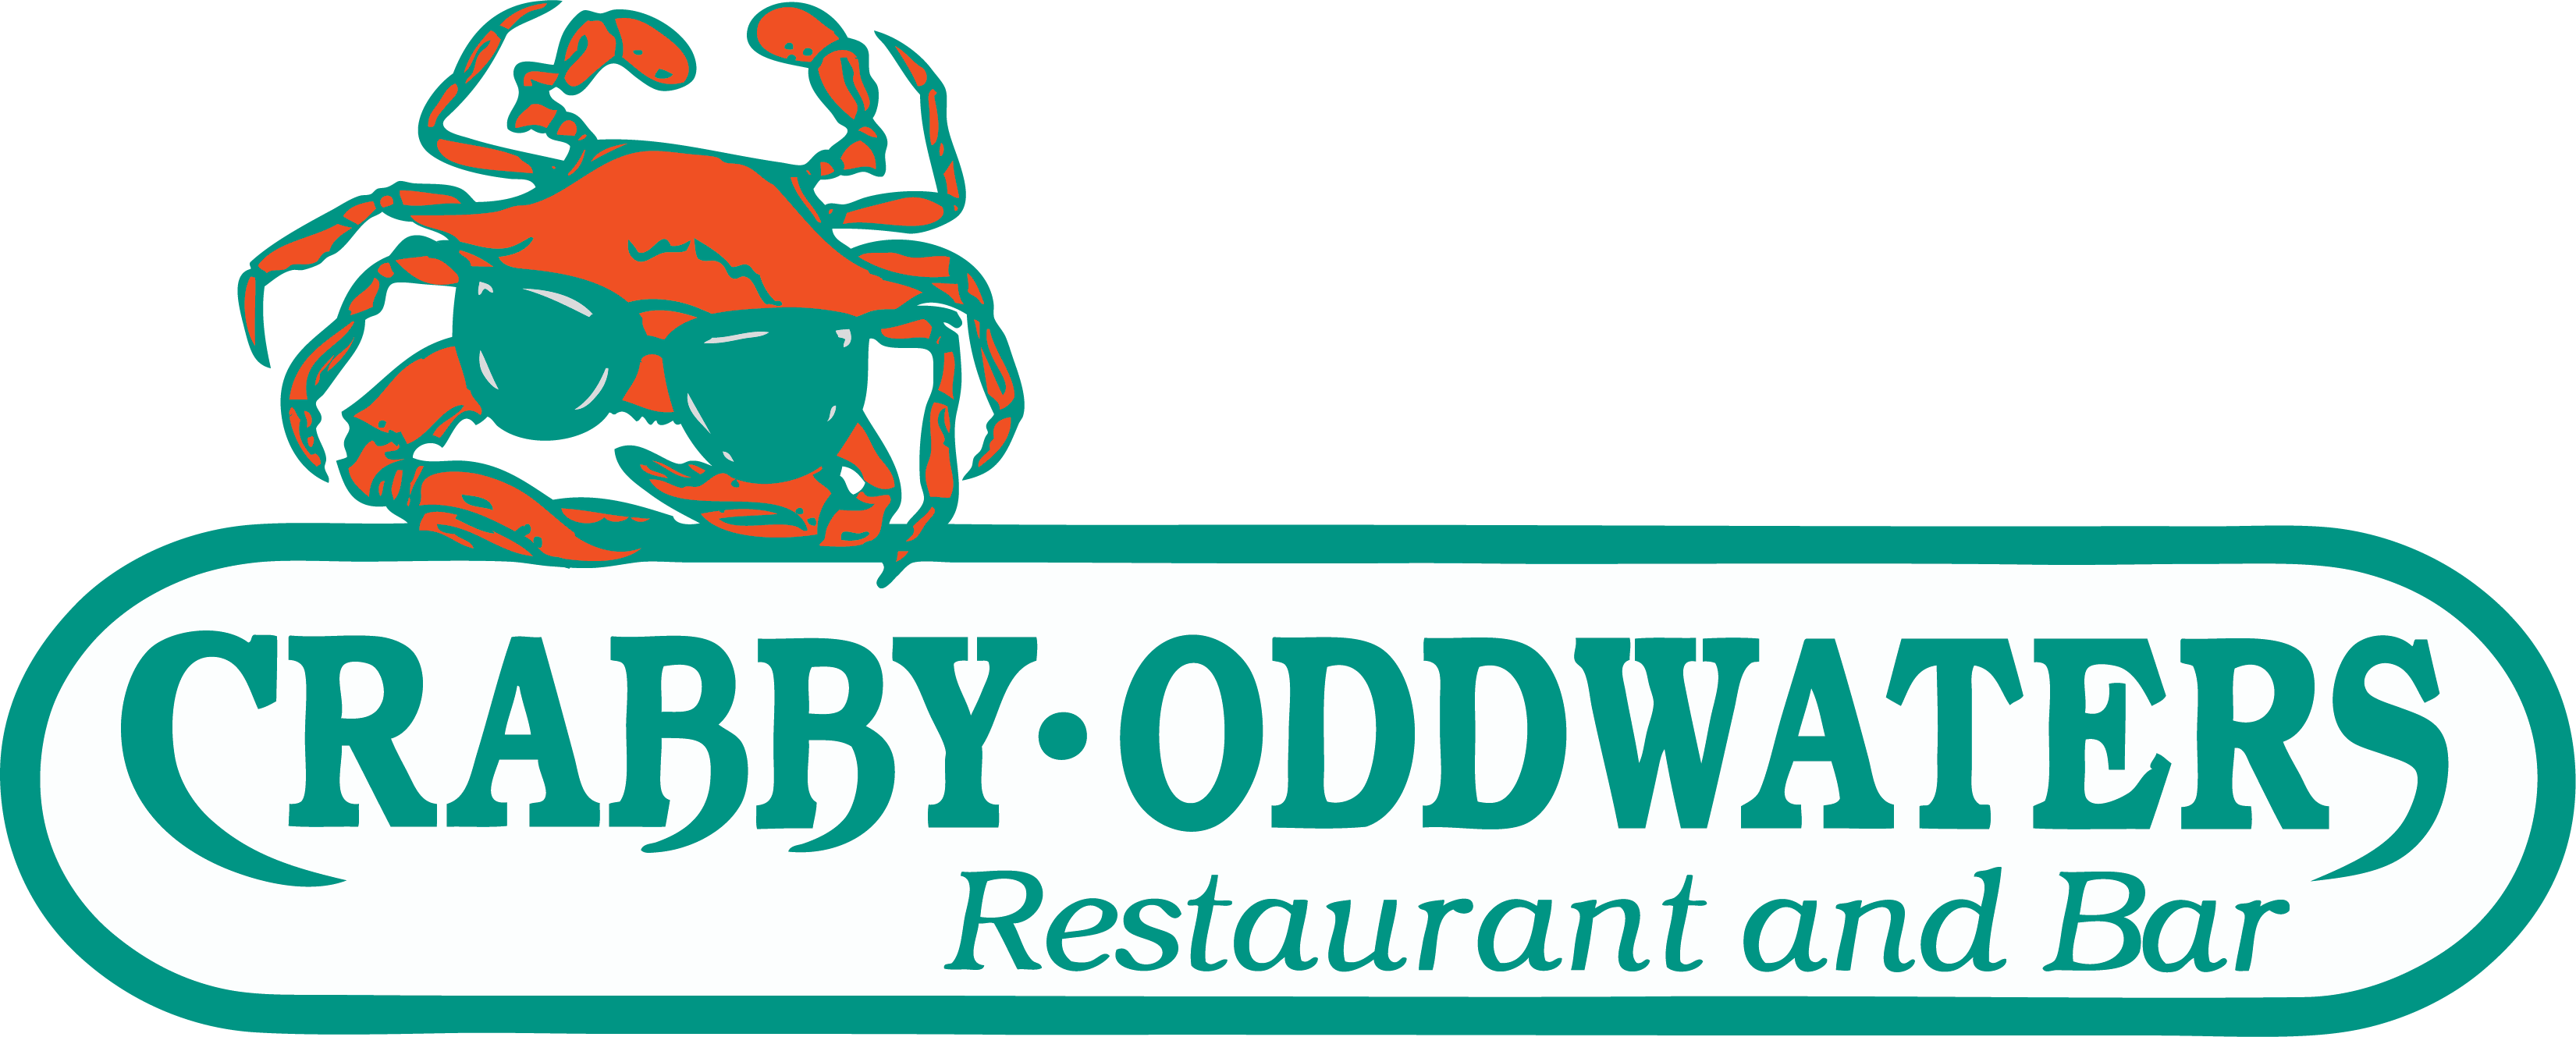 Crabby Oddwaters